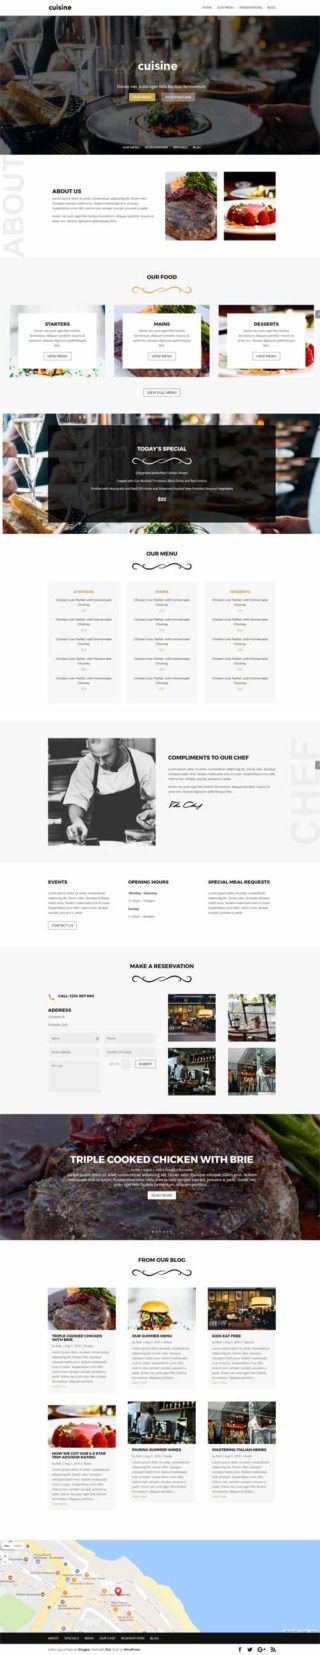 Resume cv page layout divi theme layouts